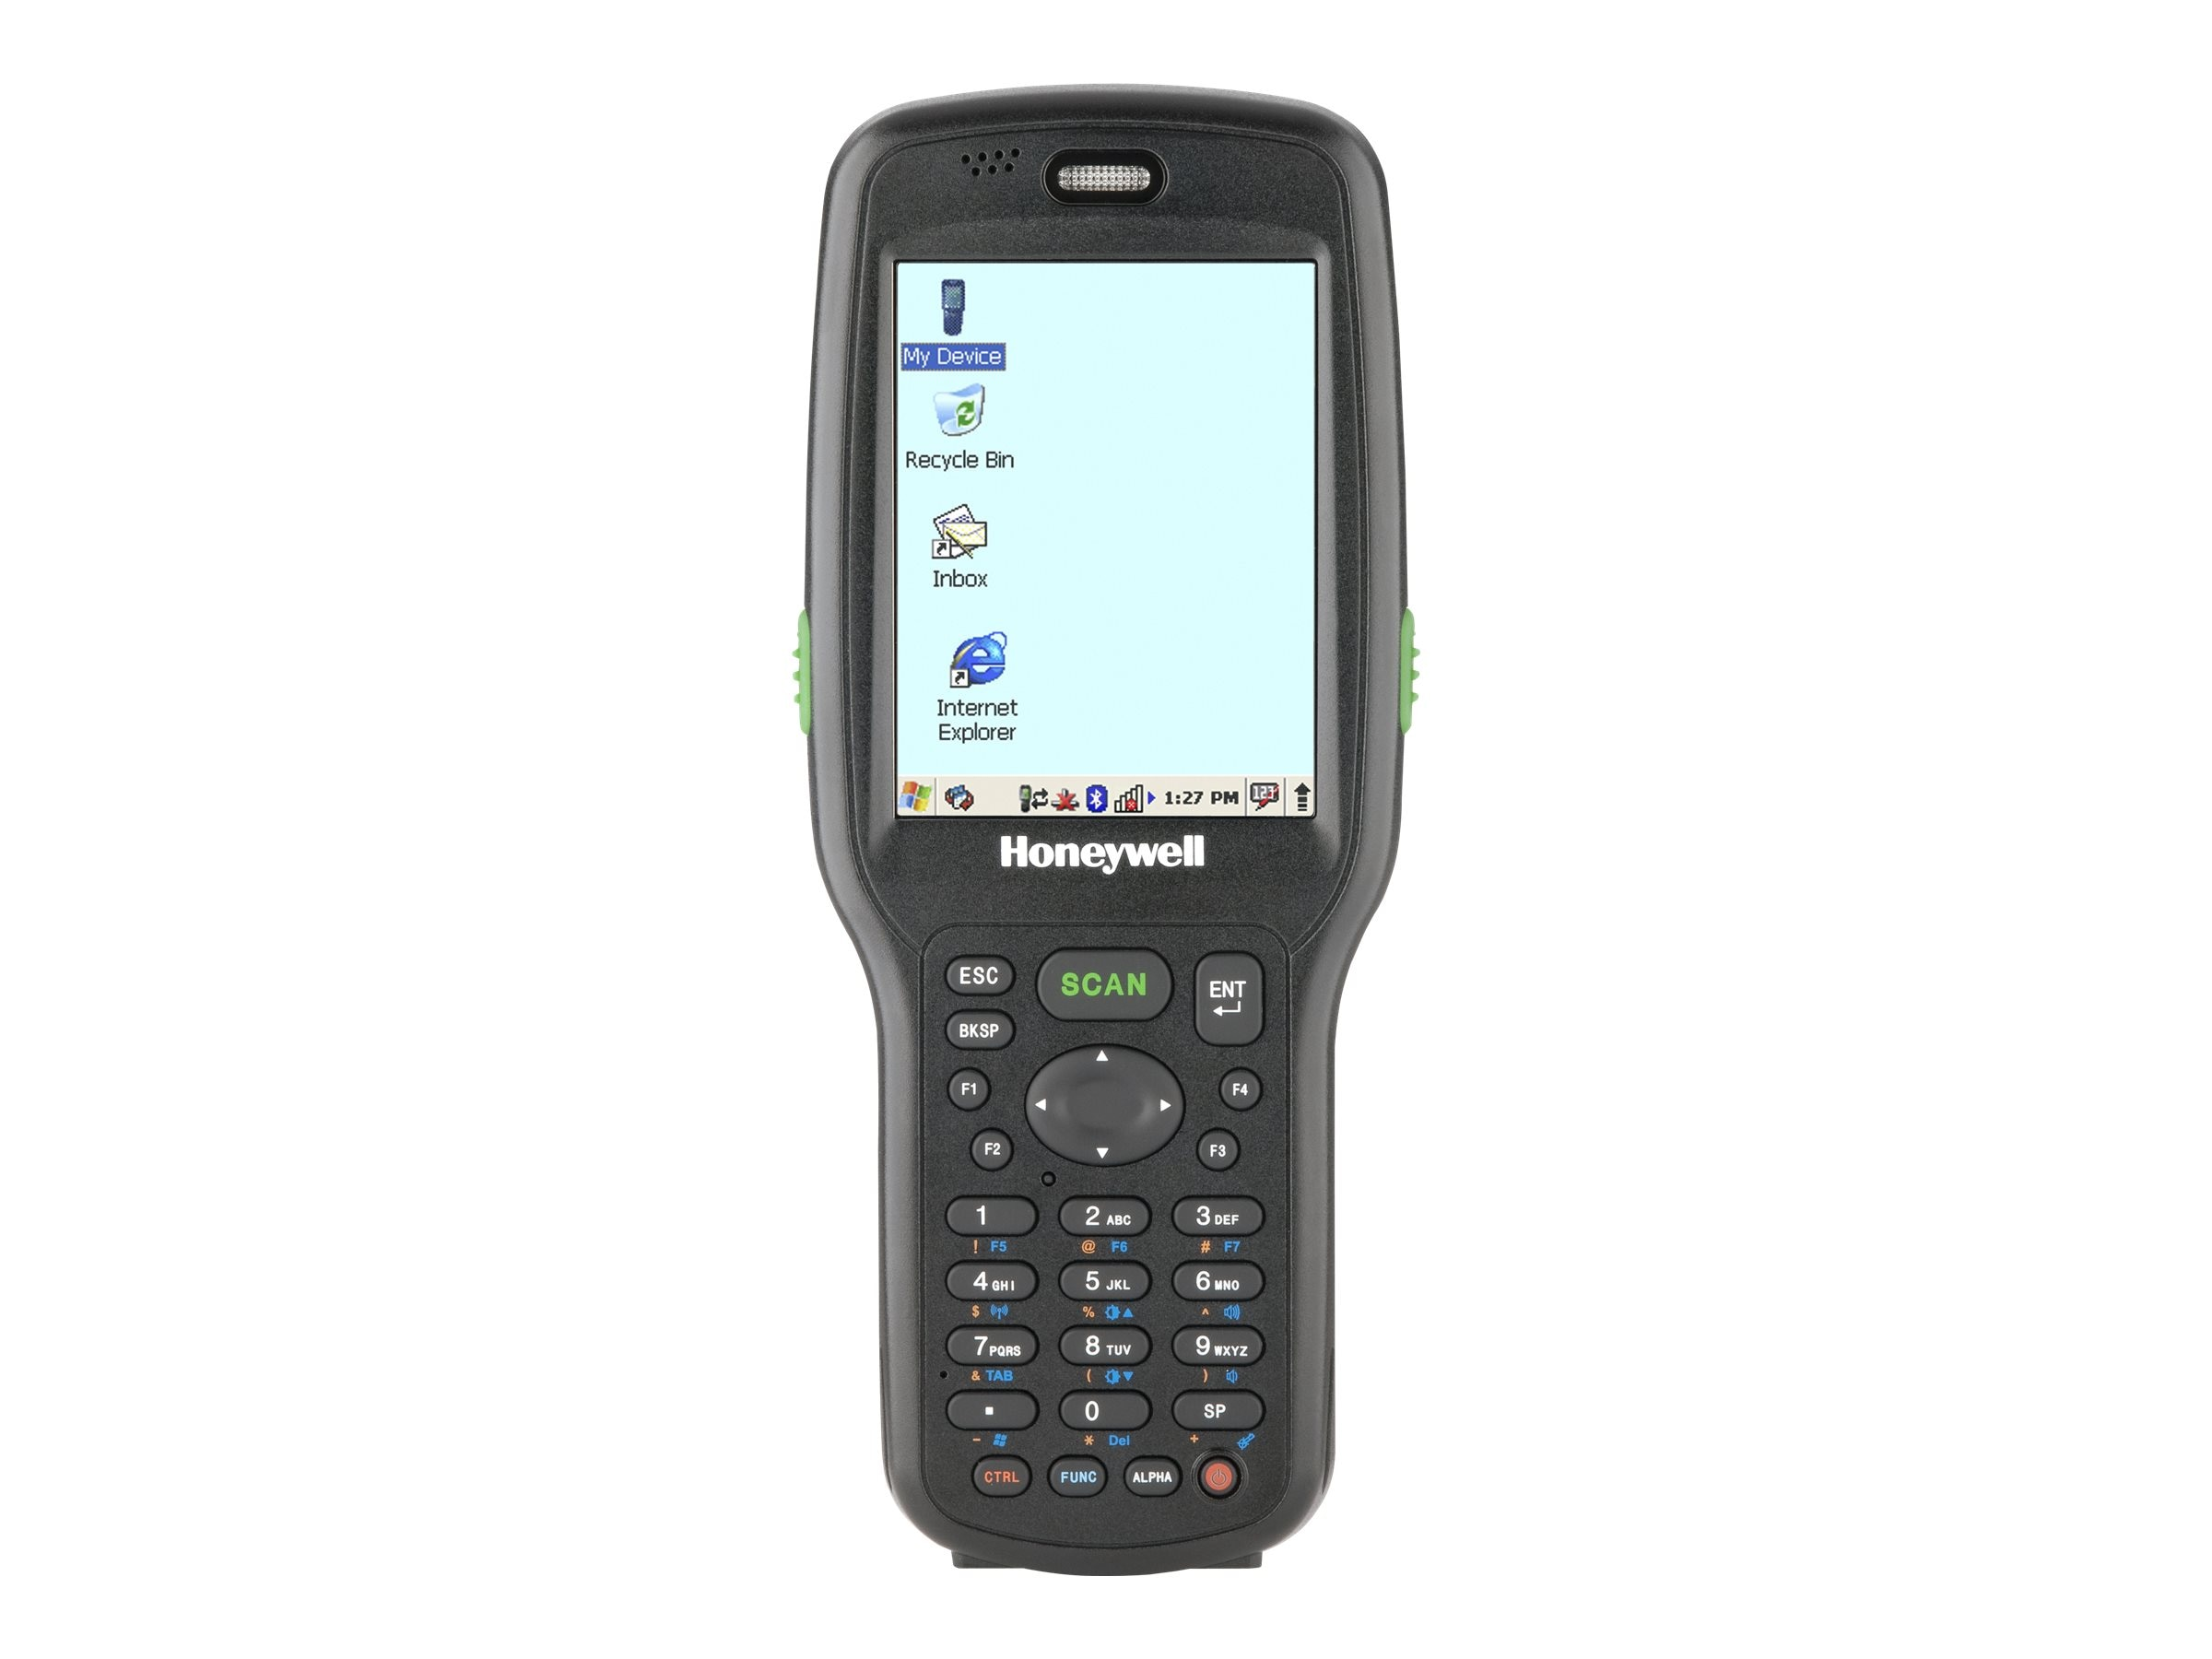 Honeywell Dolphin 6500 BT Imager 52-key 128MB RAM Flash Extd Batt P S H S Stylus Win CE 5.0, Black